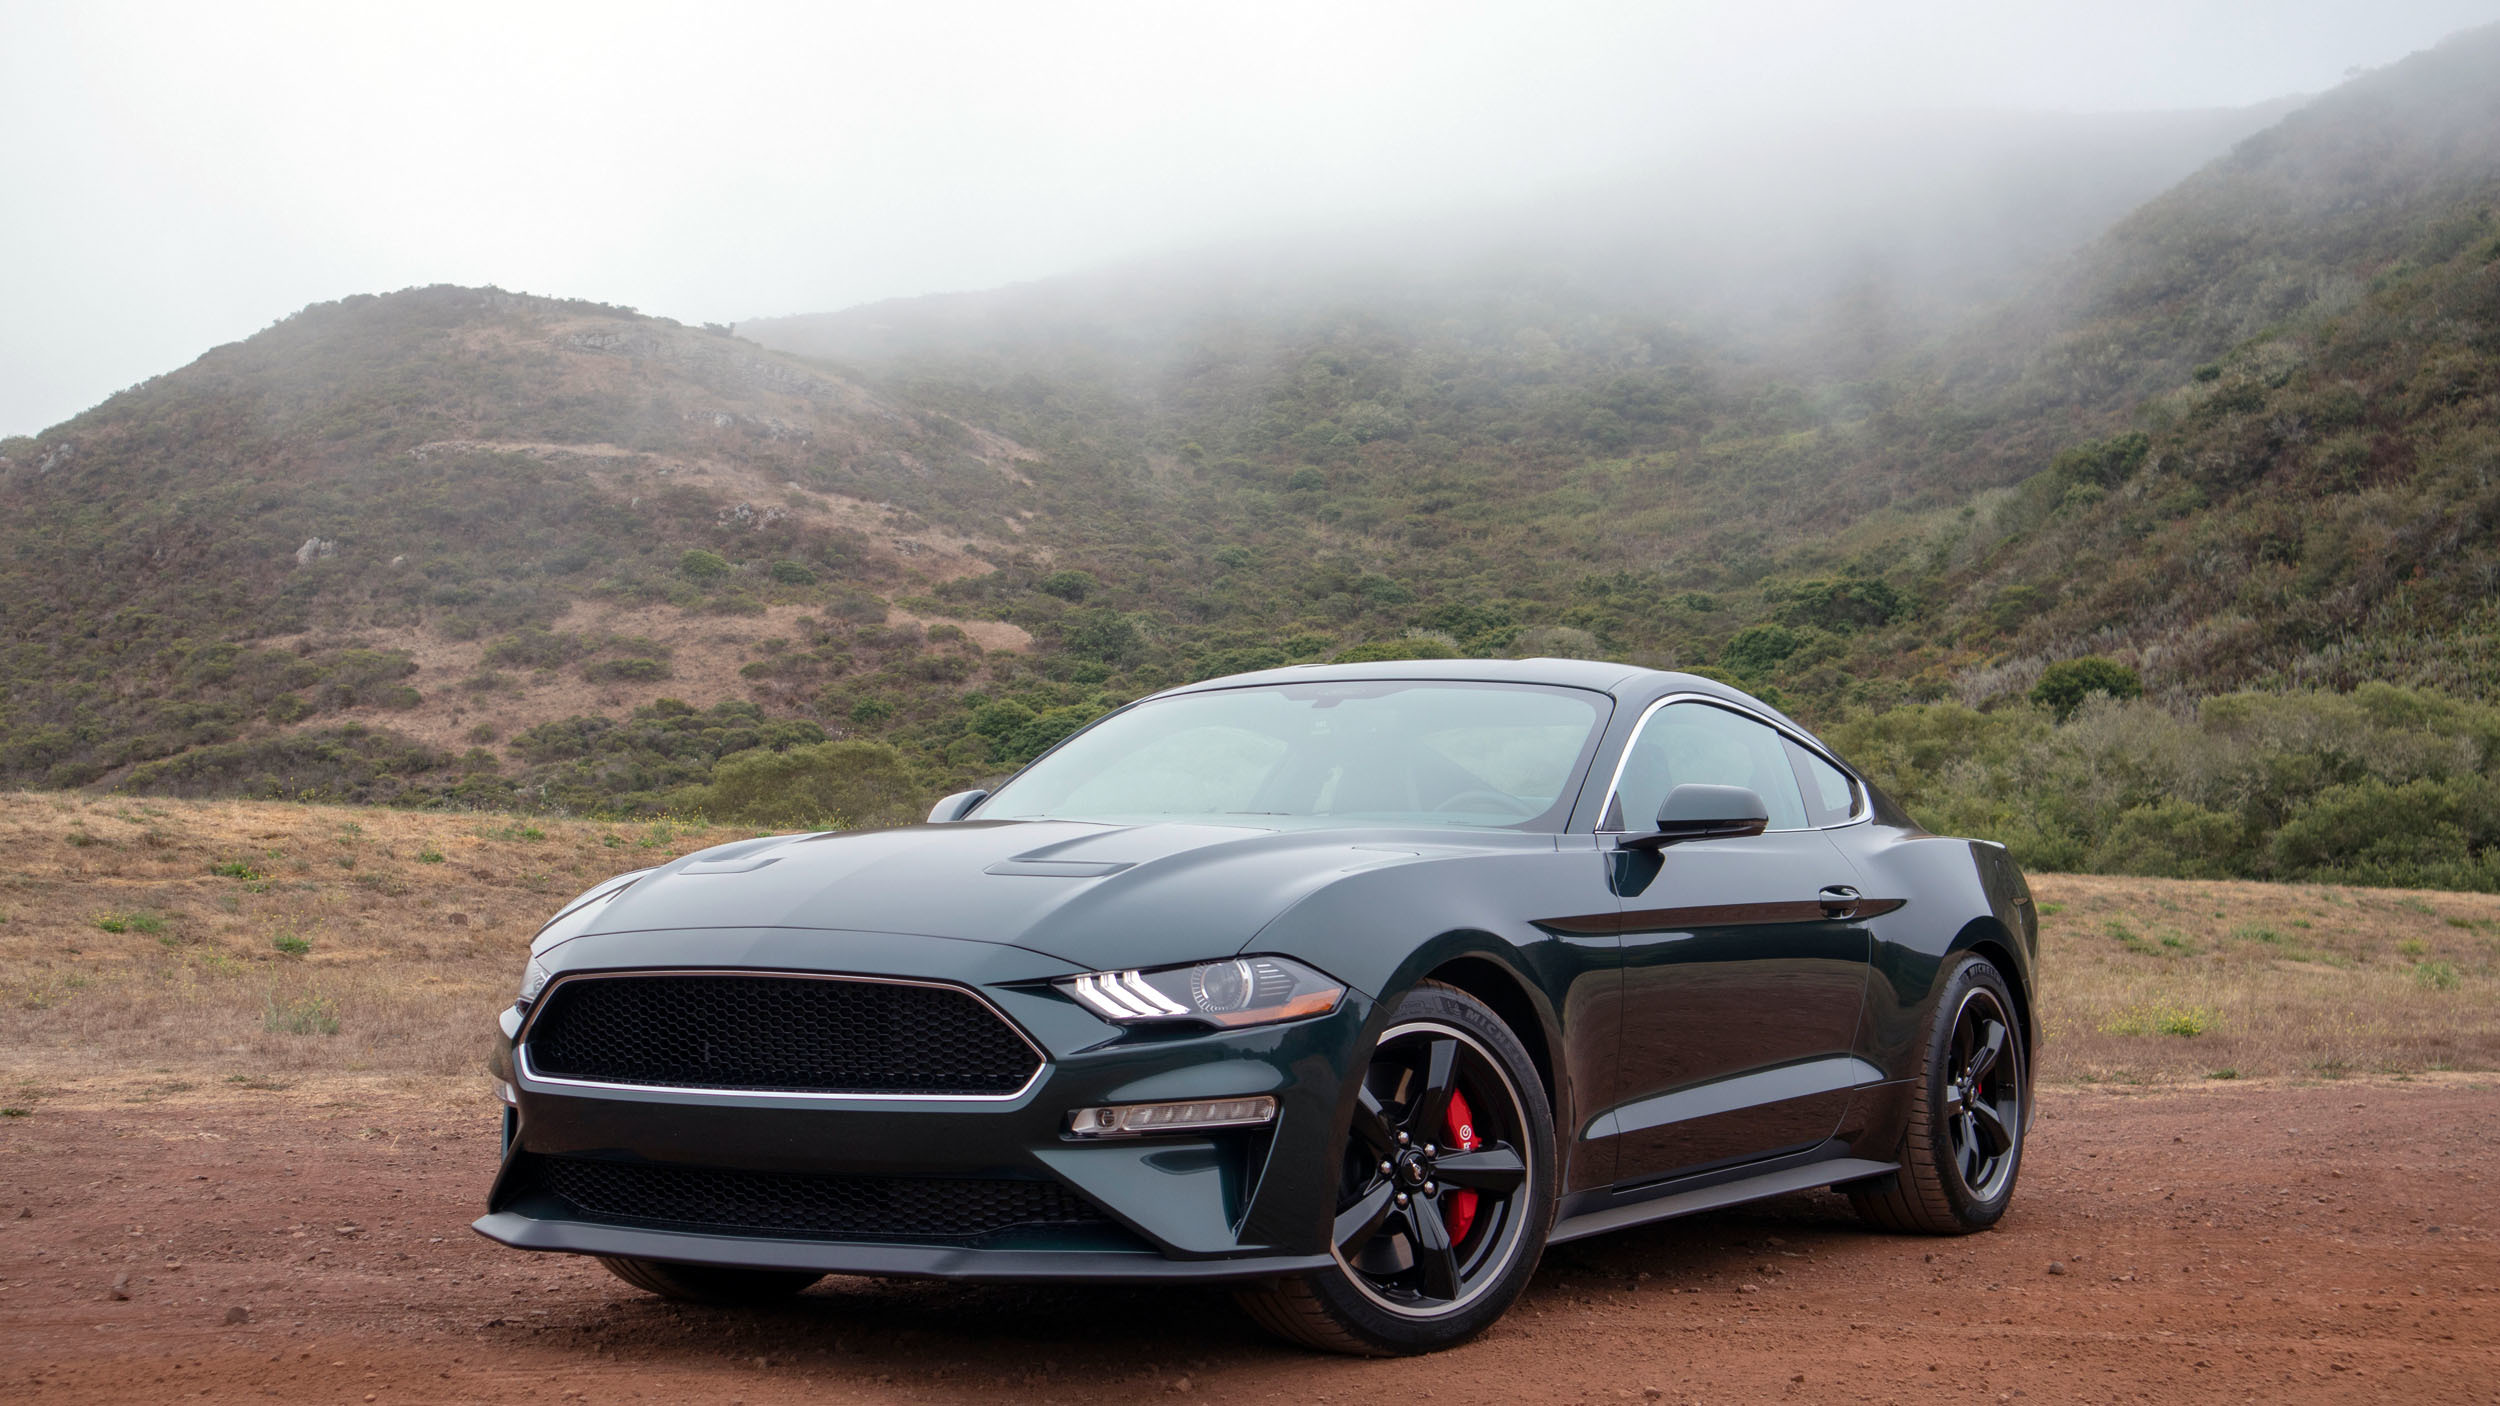 2019 ford mustang bullitt road test review specs and impressions